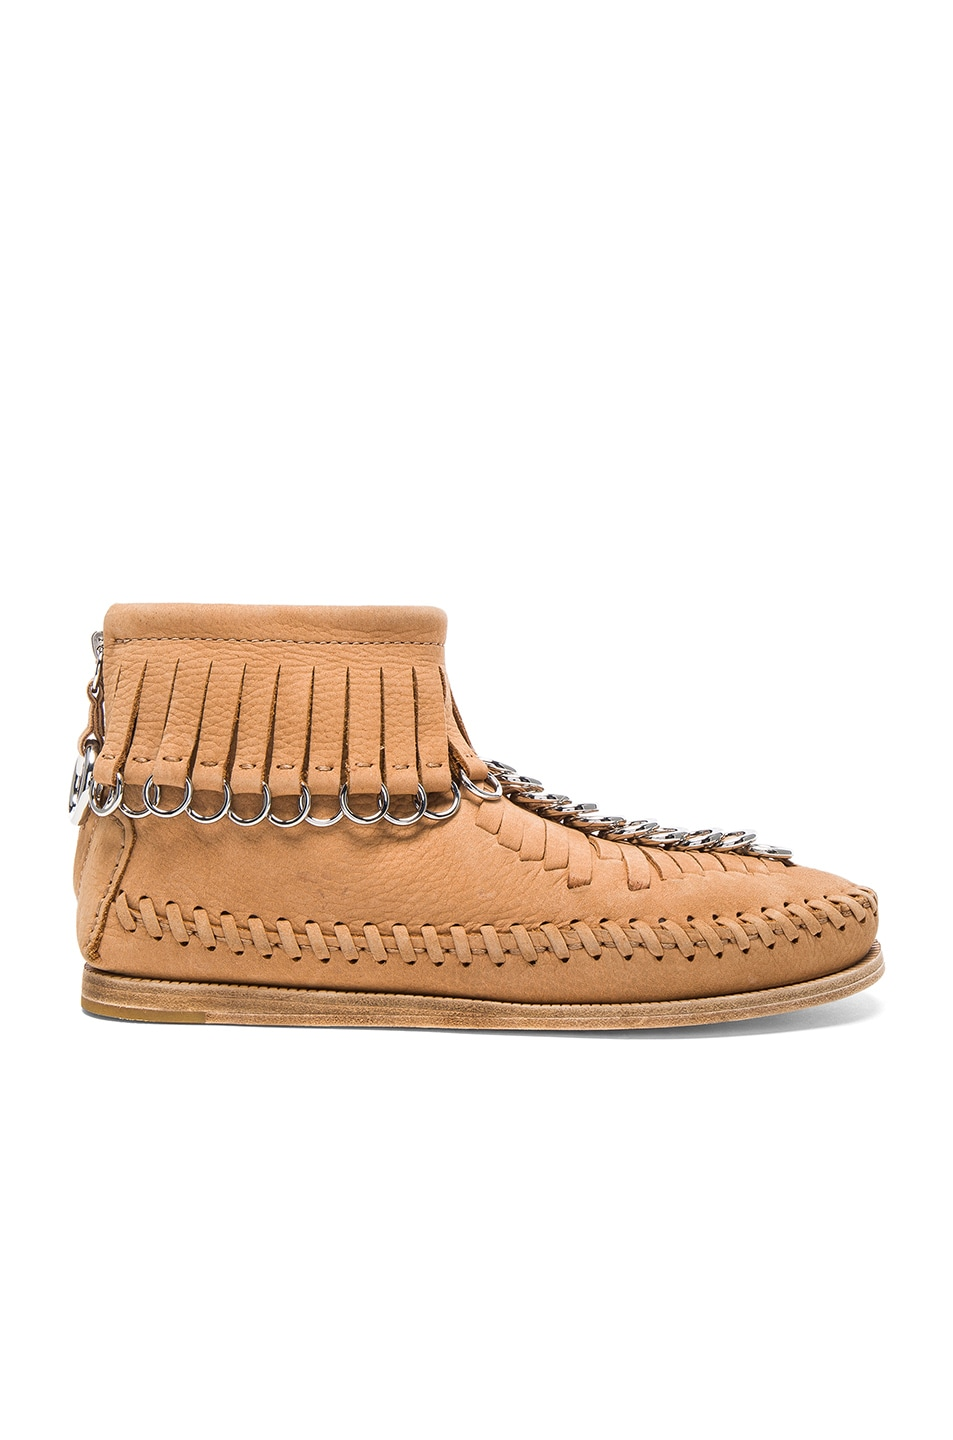 Image 1 of Alexander Wang Leather Montana Booties in Clay